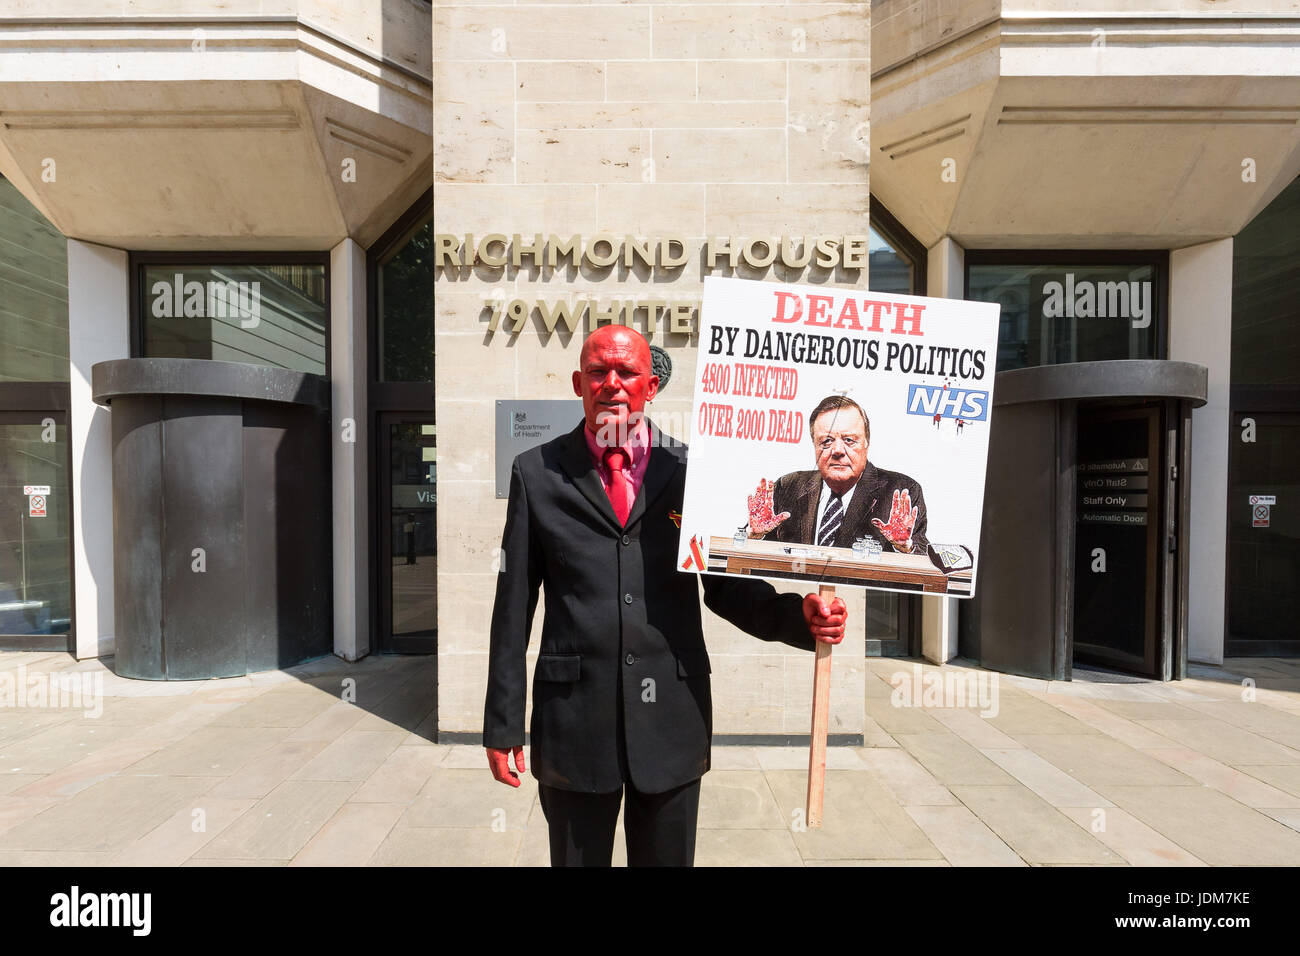 London, UK. 21st June, 2017. Tony Farrugia, painted blood red, protests outside the Department of Health at Richmond - Stock Image